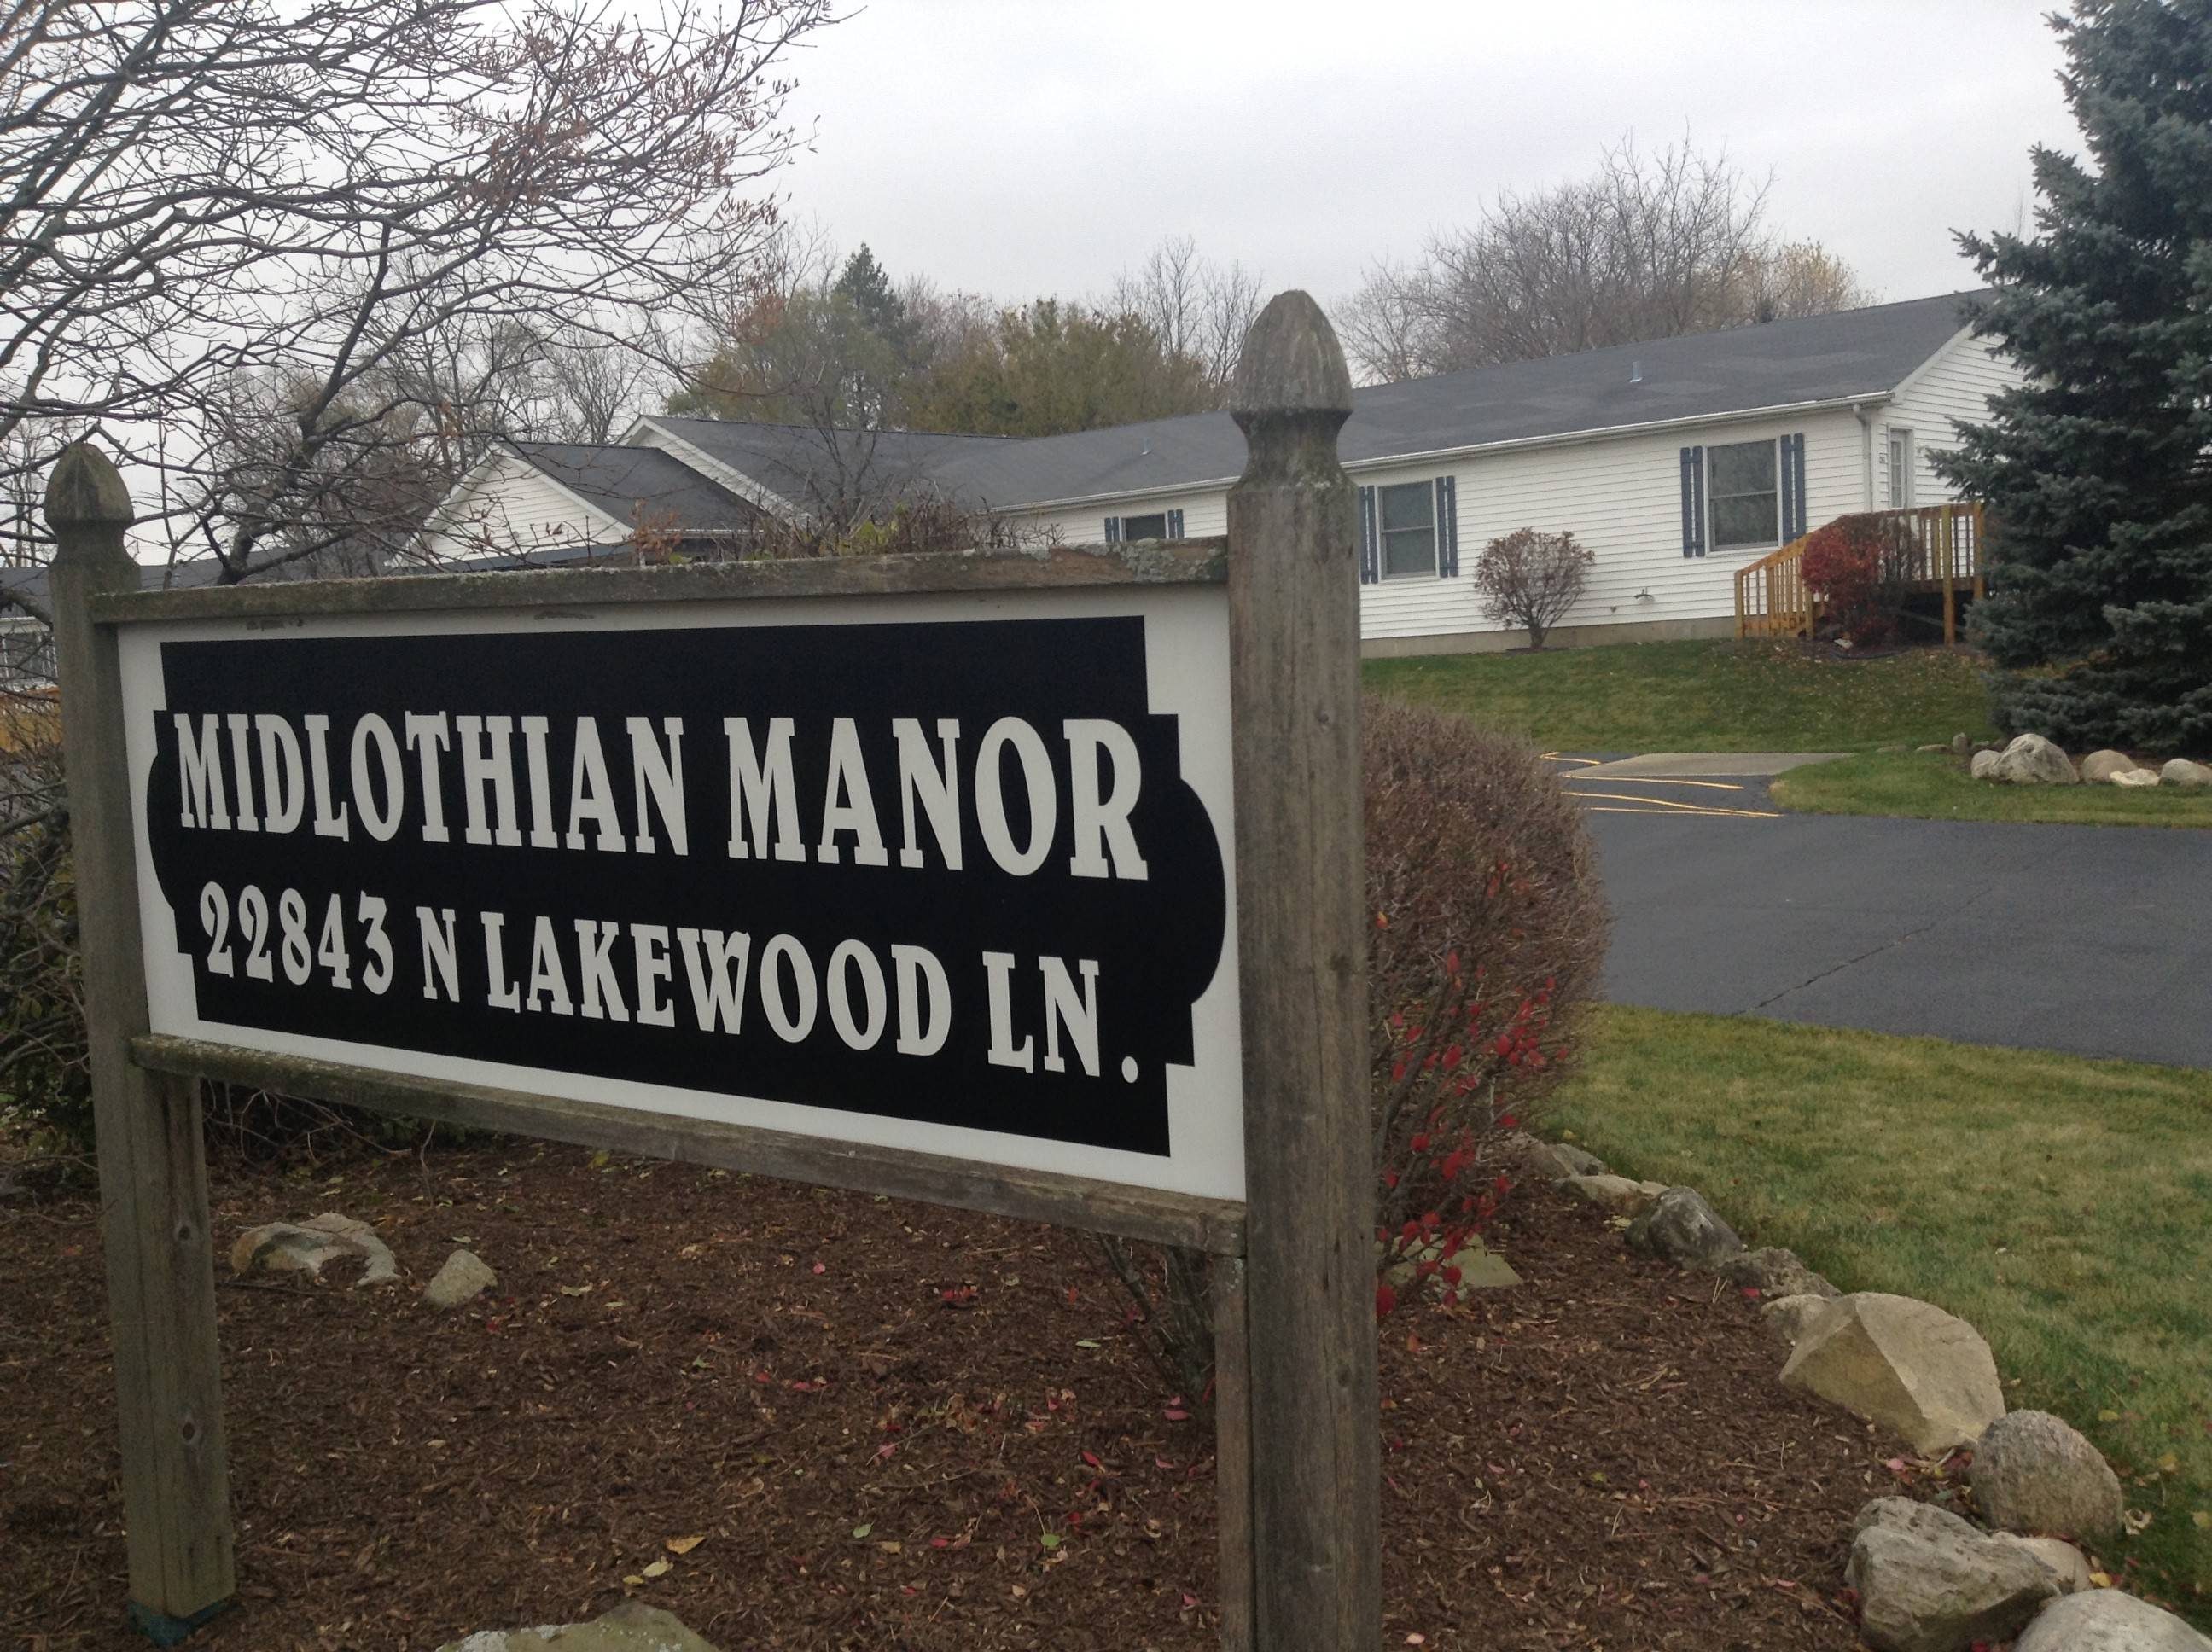 Lake County Housing Authority officials went to court July 8 over a decision by the zoning board of appeals denying the agency's proposal to place chronically homeless residents with mental illness in the vacant 14-unit Midlothian Manor just outside Lake Zurich.